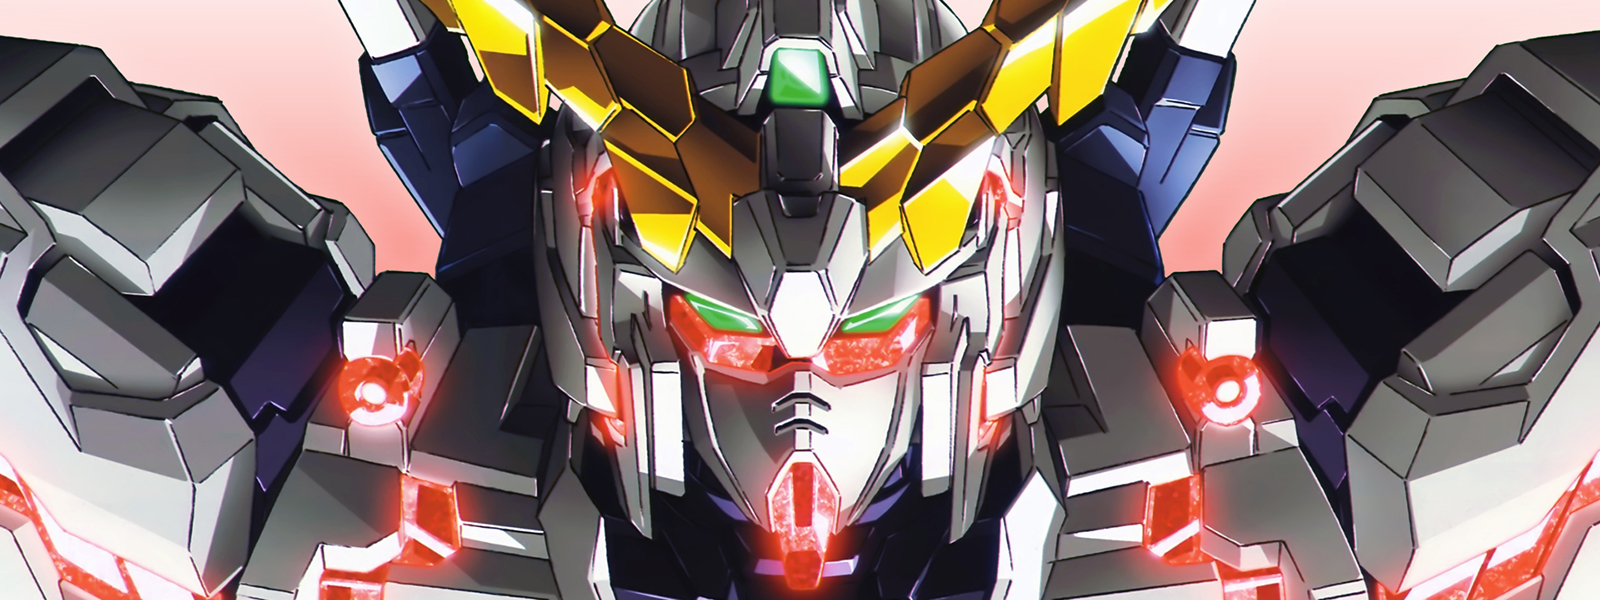 Gundam Unicorn 54 Widescreen Wallpaper - Animewp.com